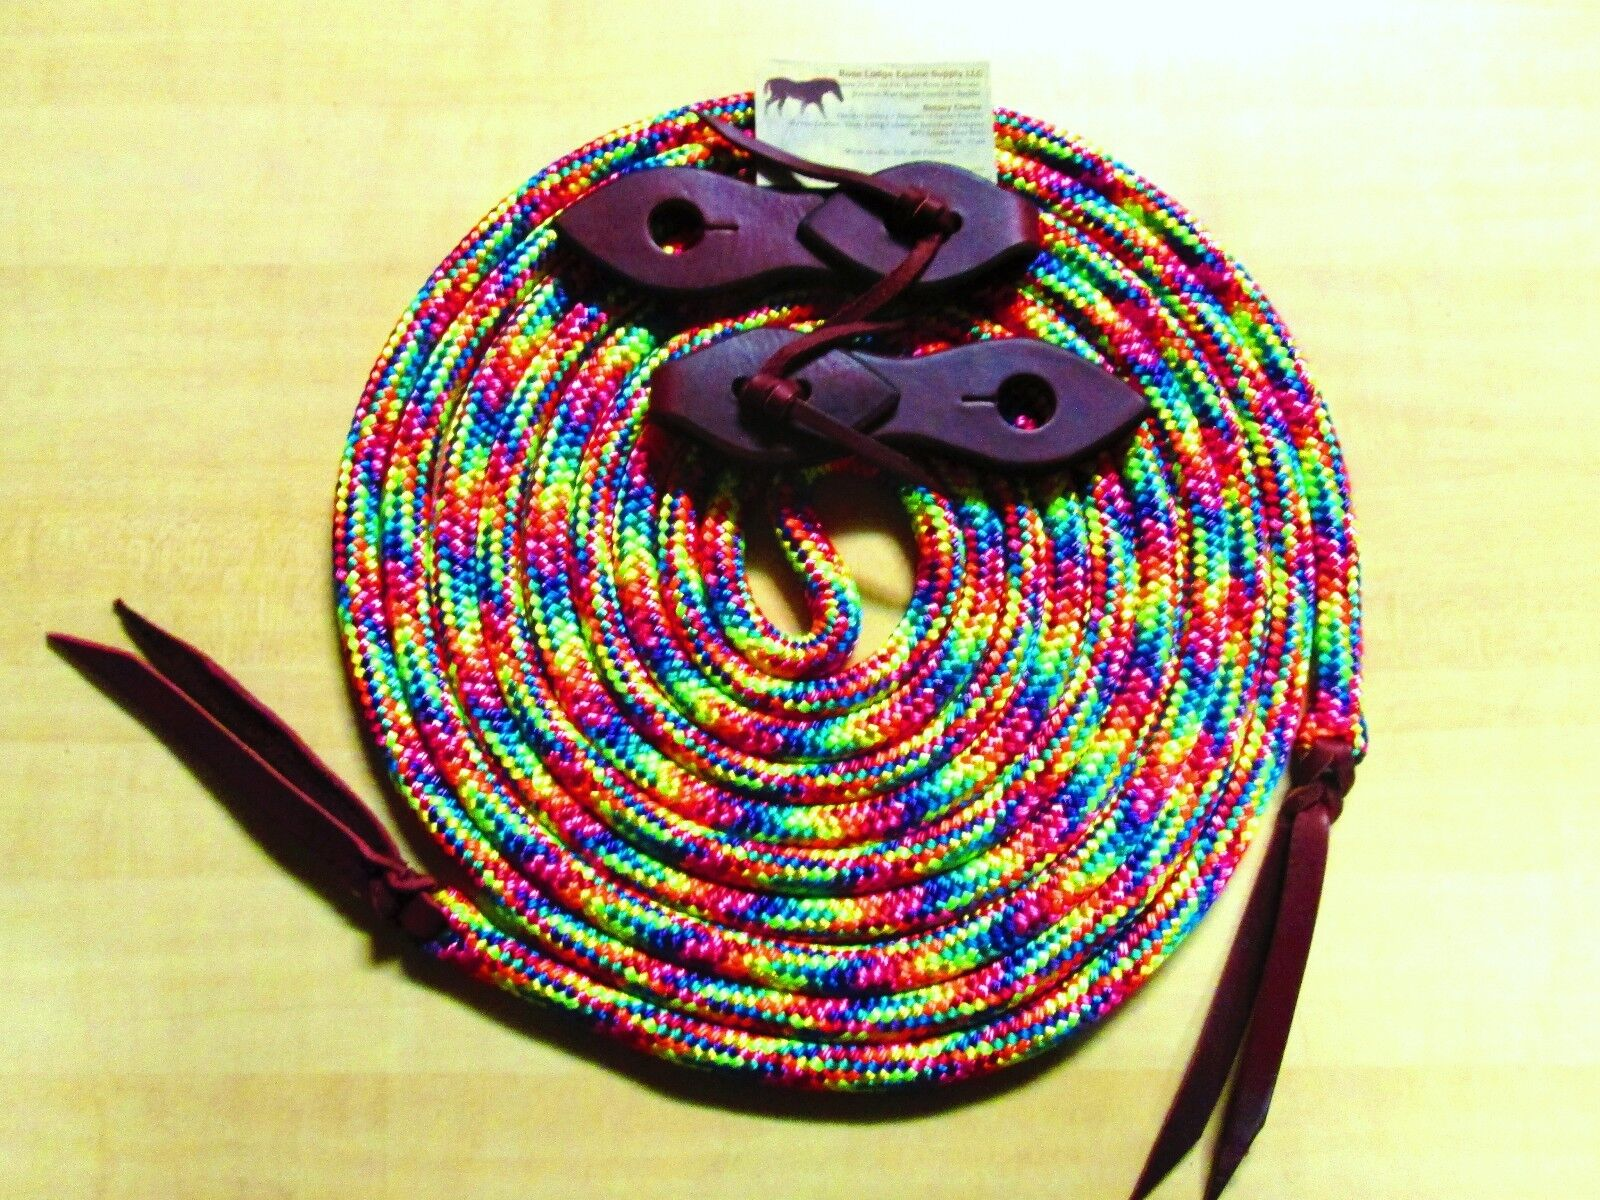 22' RAINBOW Yacht Rope Mecate, Teardrop Slobber  Straps By pink Lodge Equine USA  choices with low price